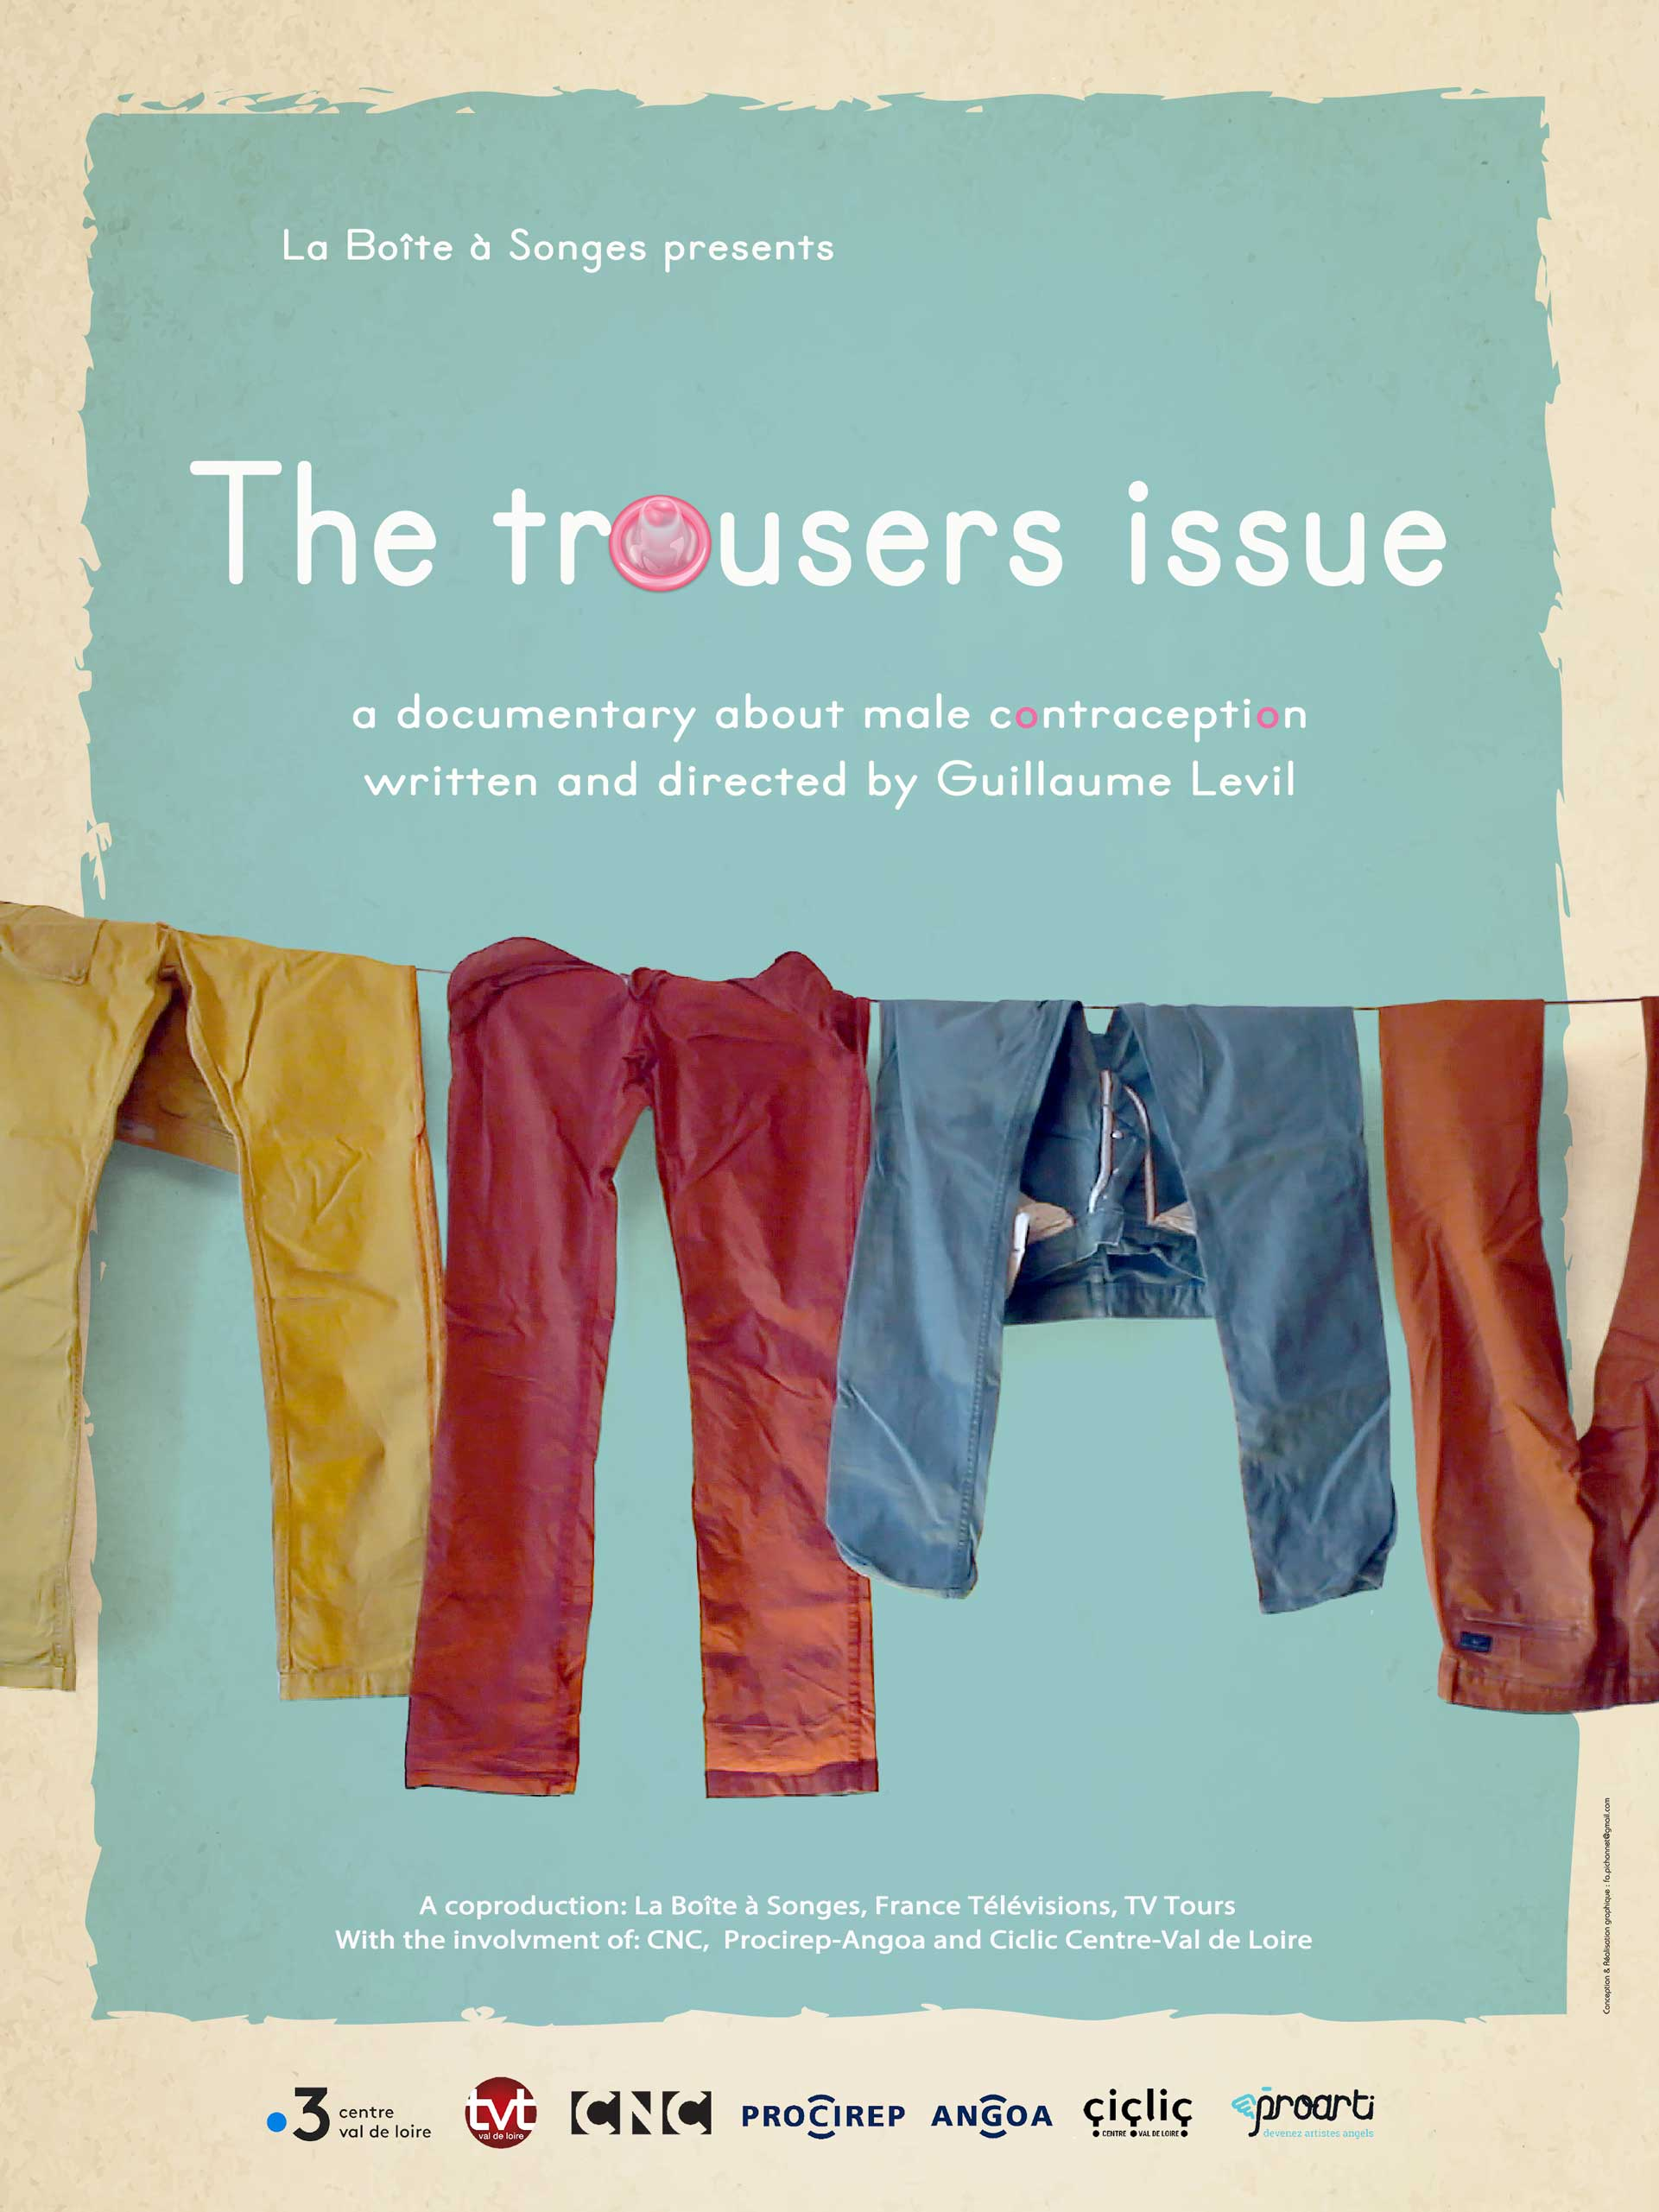 poster of the movie trousers issue